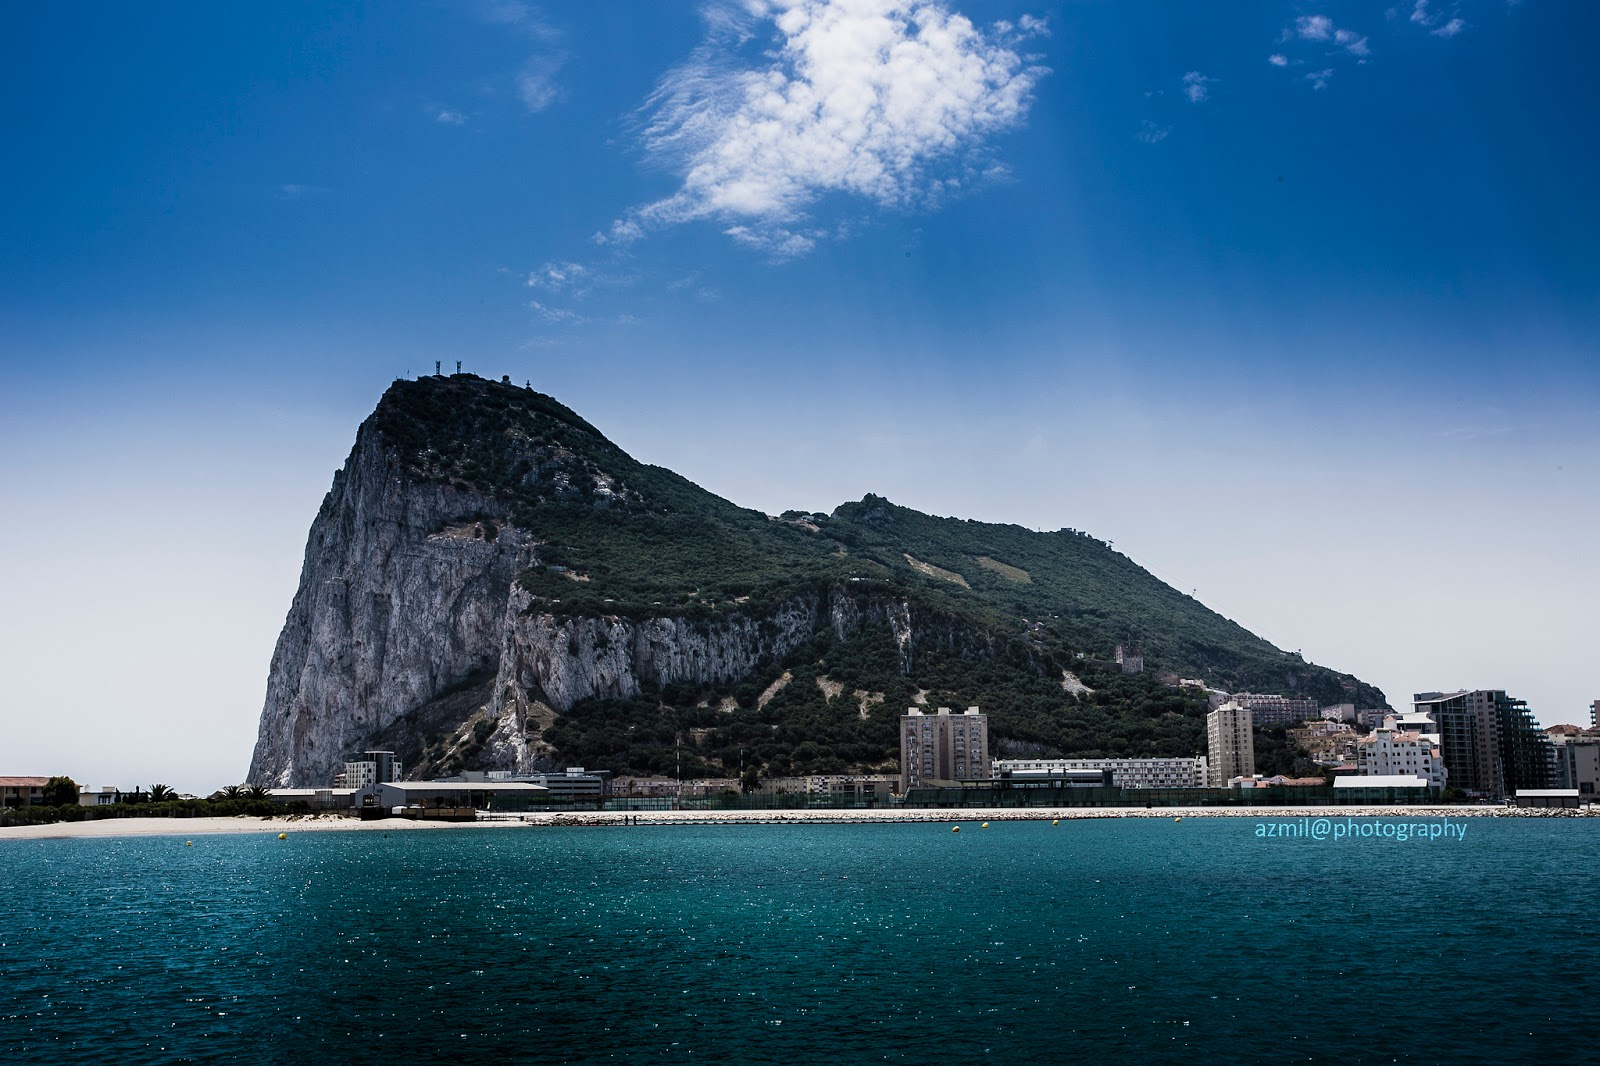 Around the Rock of Gibraltar and through the Pillars of Hercules we will go! Photo: Mohd Nor Azmil Abdul Rahman, Creative Commons license.